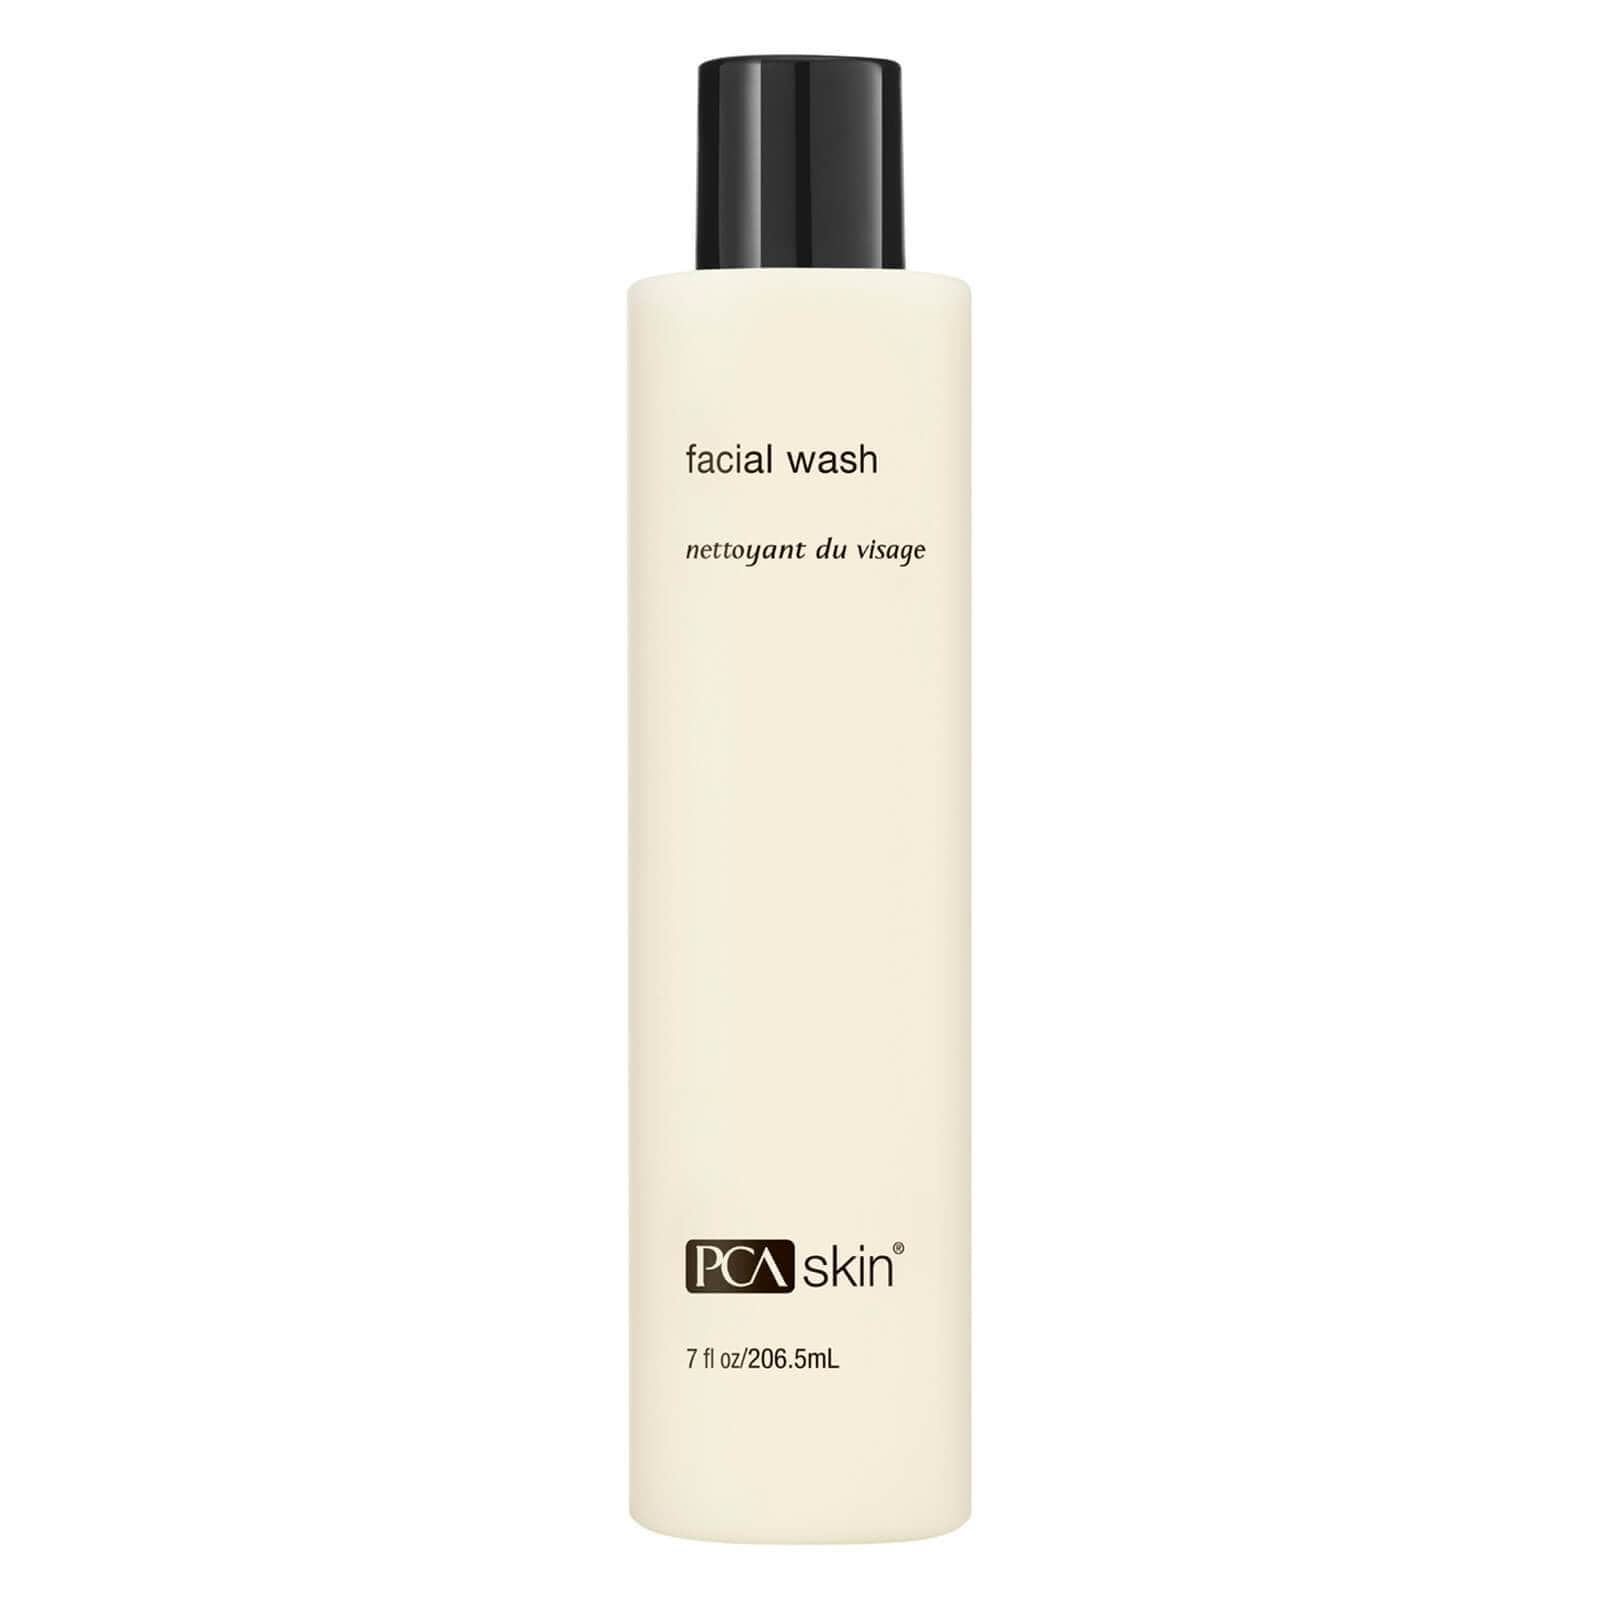 PCA SKIN Facial Wash 7 fl. oz.